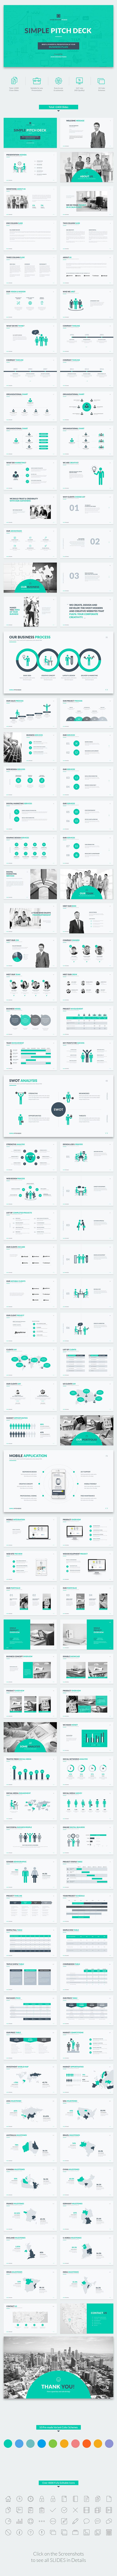 Simple Pitch Deck Keynote Template — Keynote KEY #best keynote template #template • Download ➝ https://graphicriver.net/item/simple-pitch-deck-keynote-template/18816235?ref=pxcr